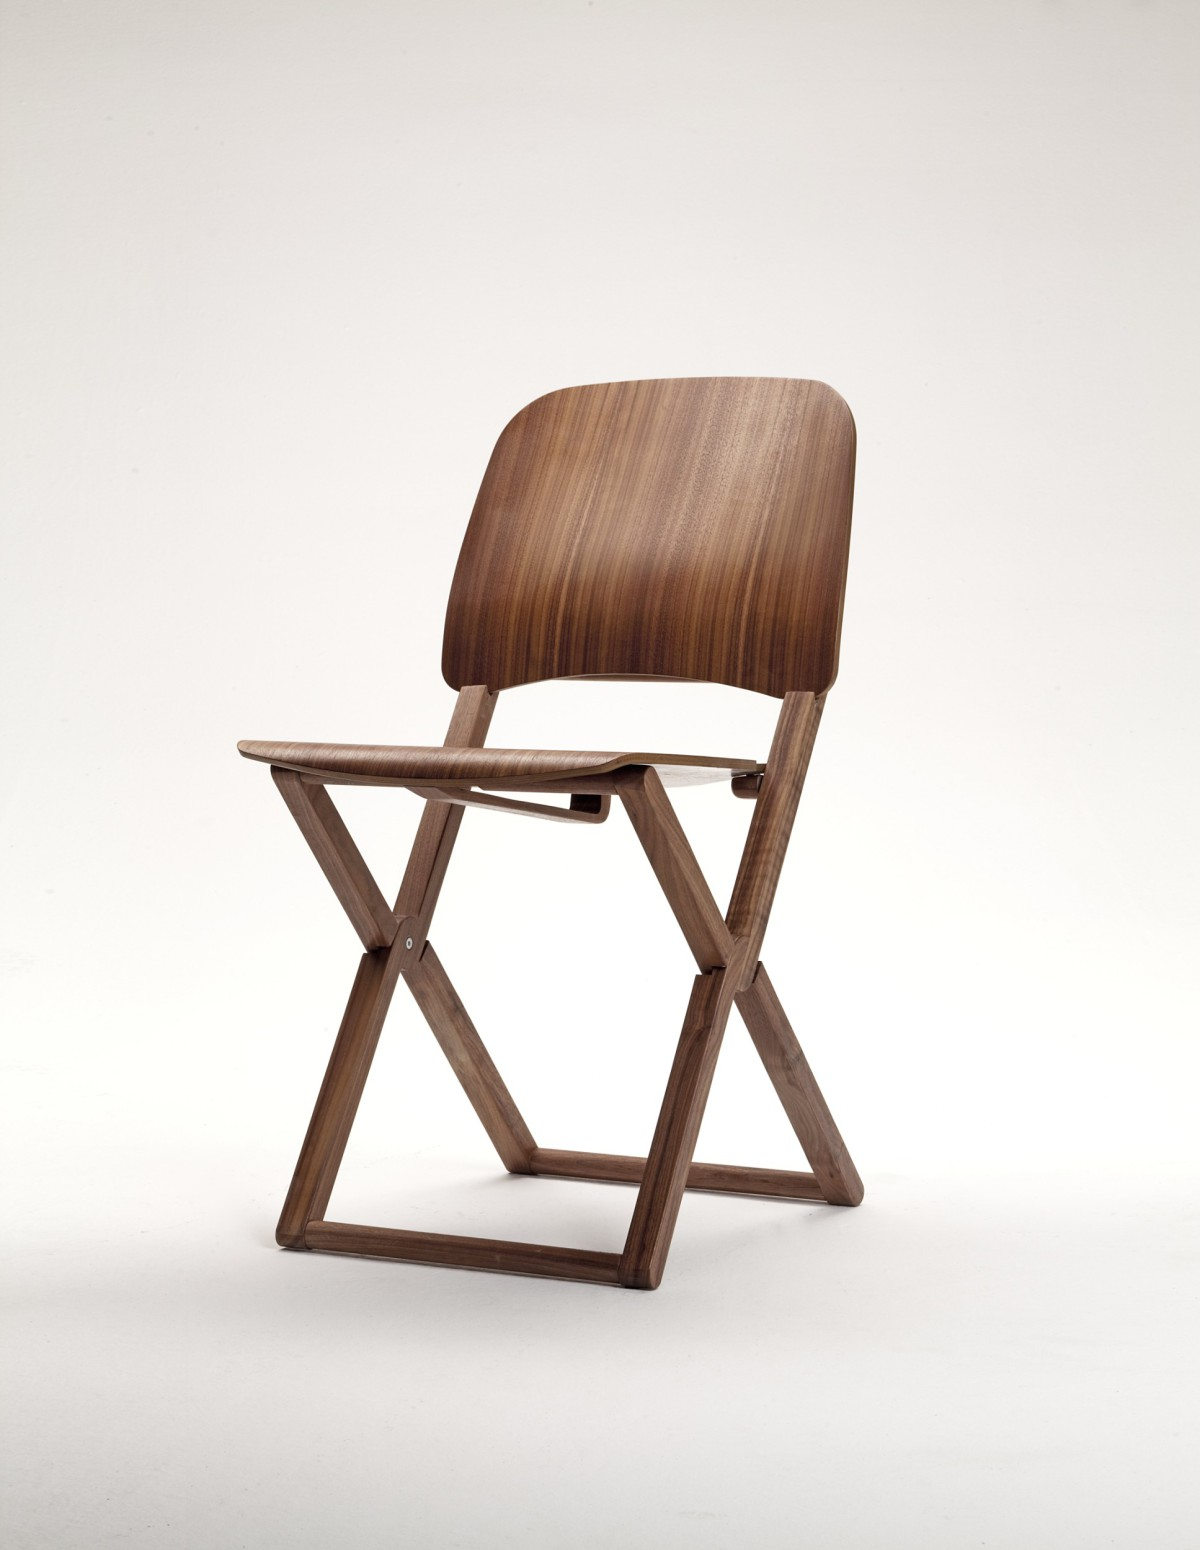 Attirant ... Studiolucianobertoncini Nibe Is A Wooden Folding Chair. Light And Handy  Is Available In Beech Wood, ...